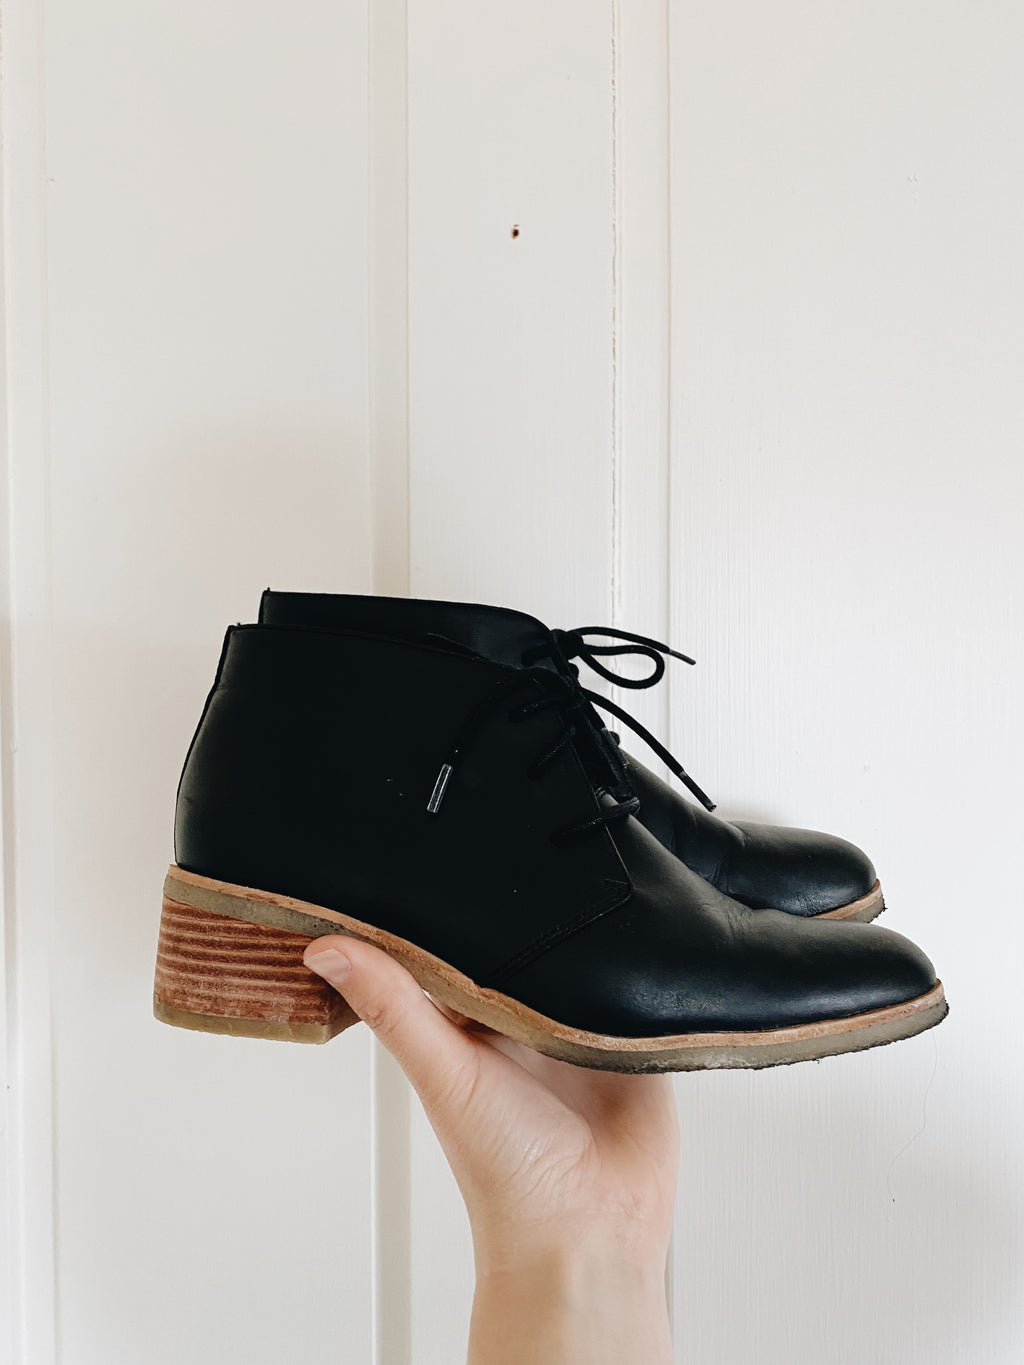 Clark Leather Ankle Boots- Size 9